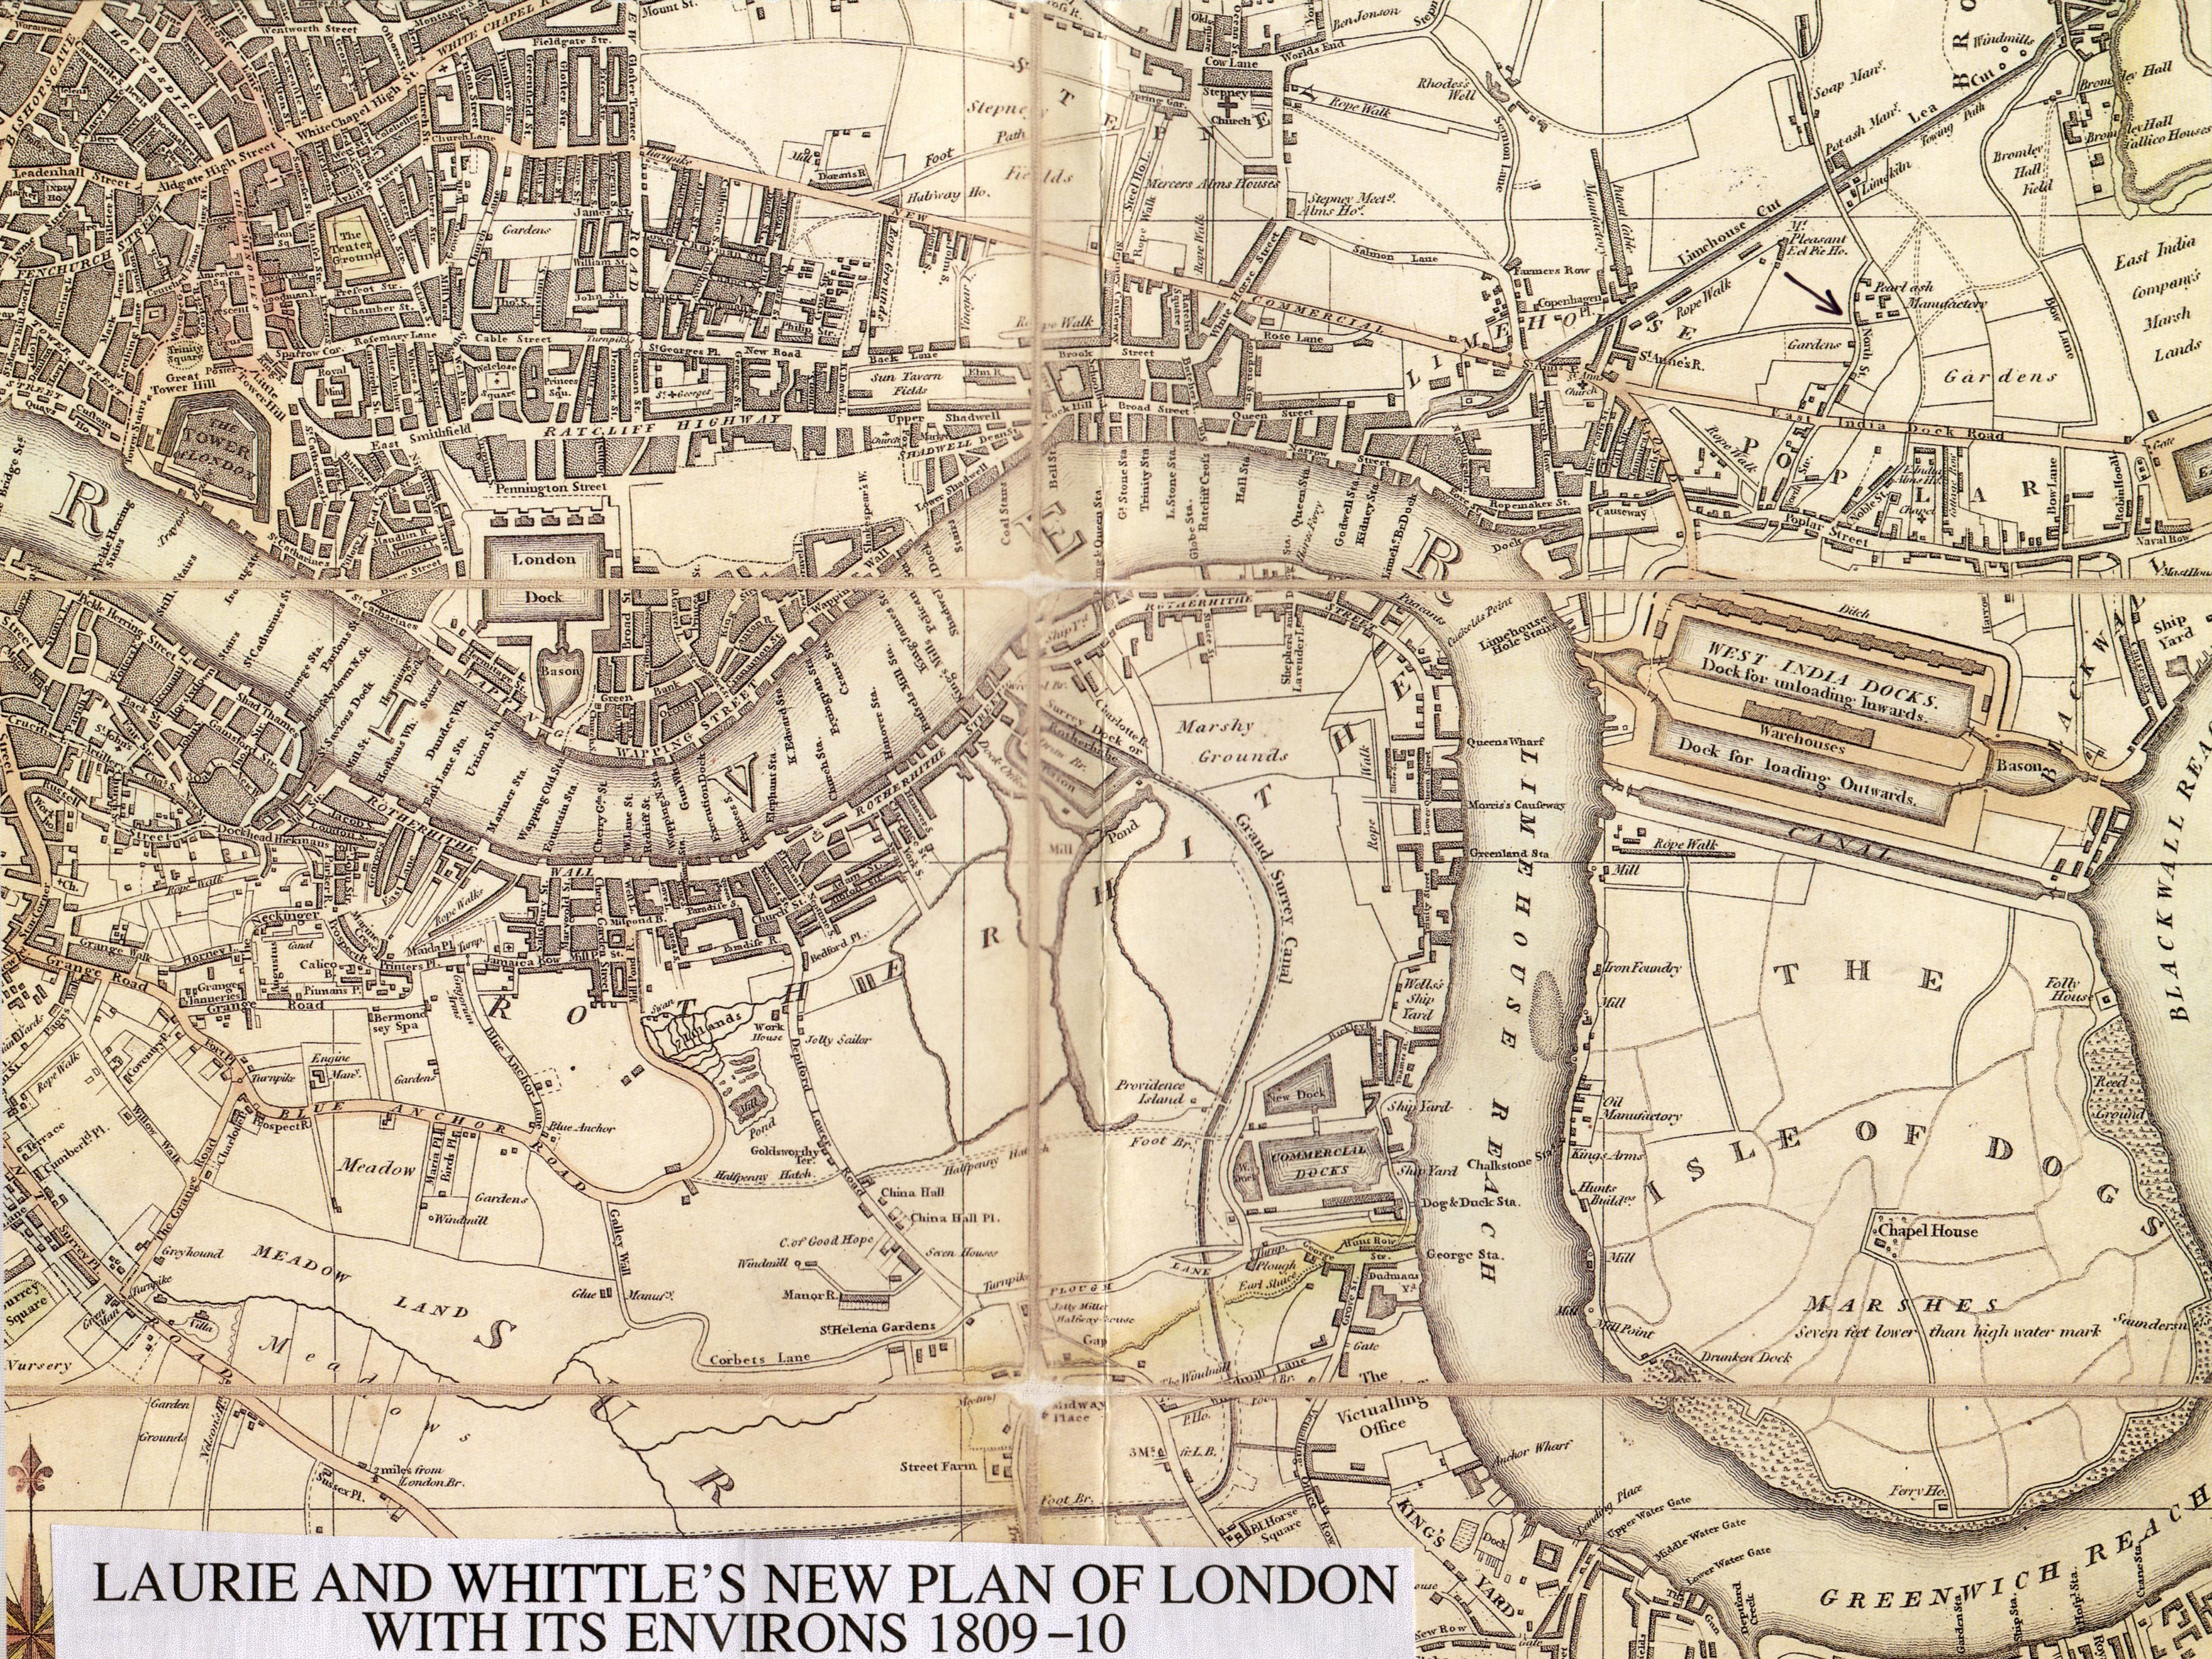 Mapa London%0A      Cruchley Pocket Map of London  England  Geographicus  Londoncrutchley     jpg                 City Plans   Pinterest   City